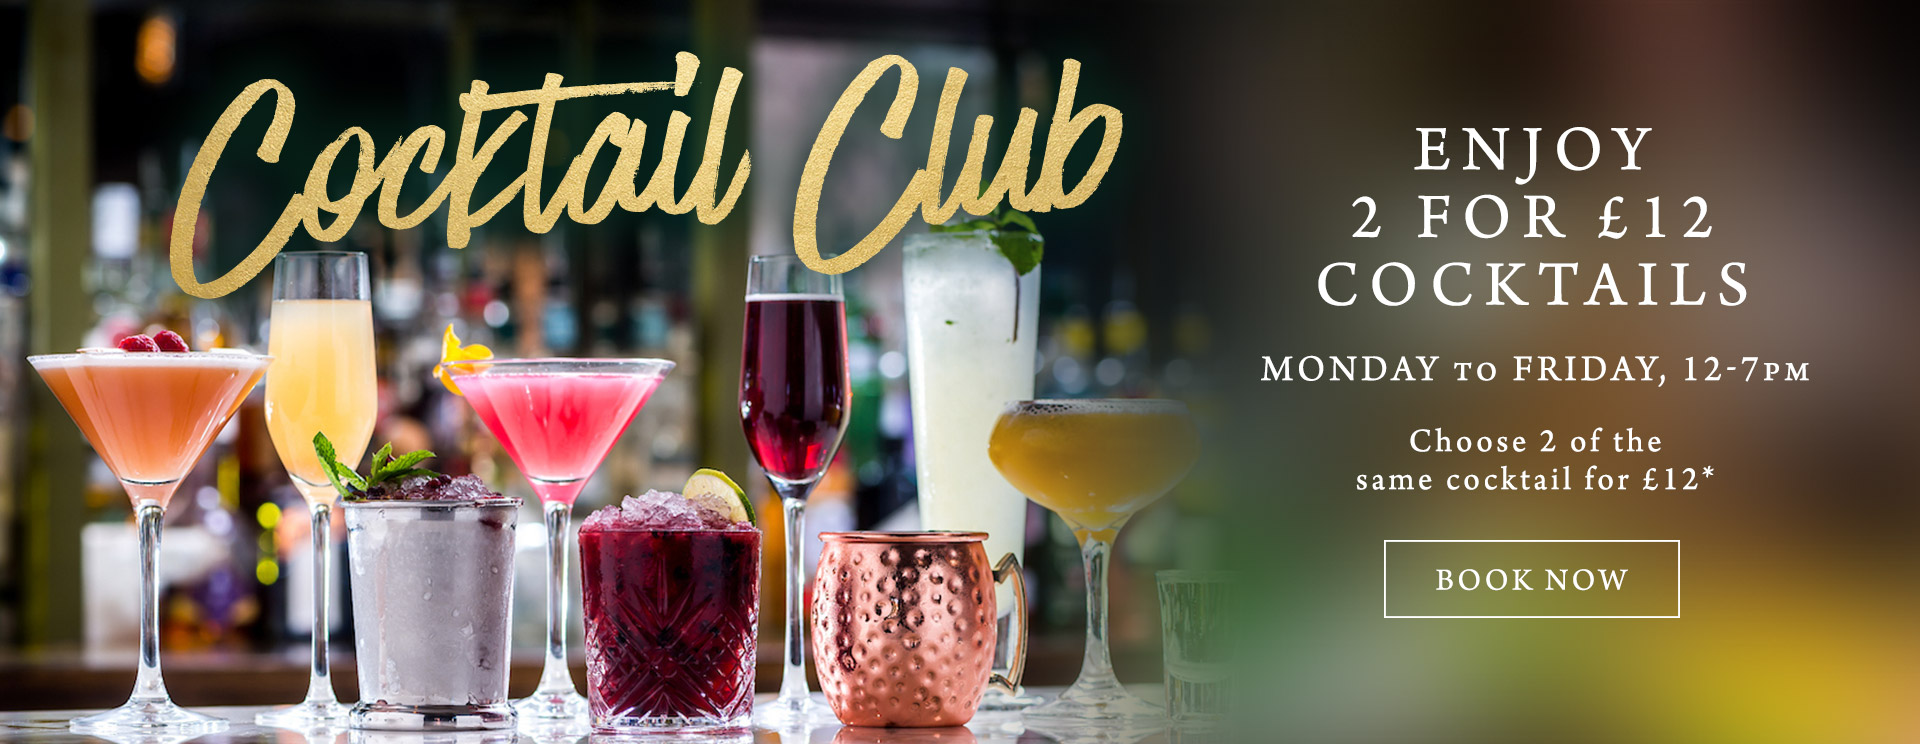 2 for £12 cocktails at The Anchor Inn